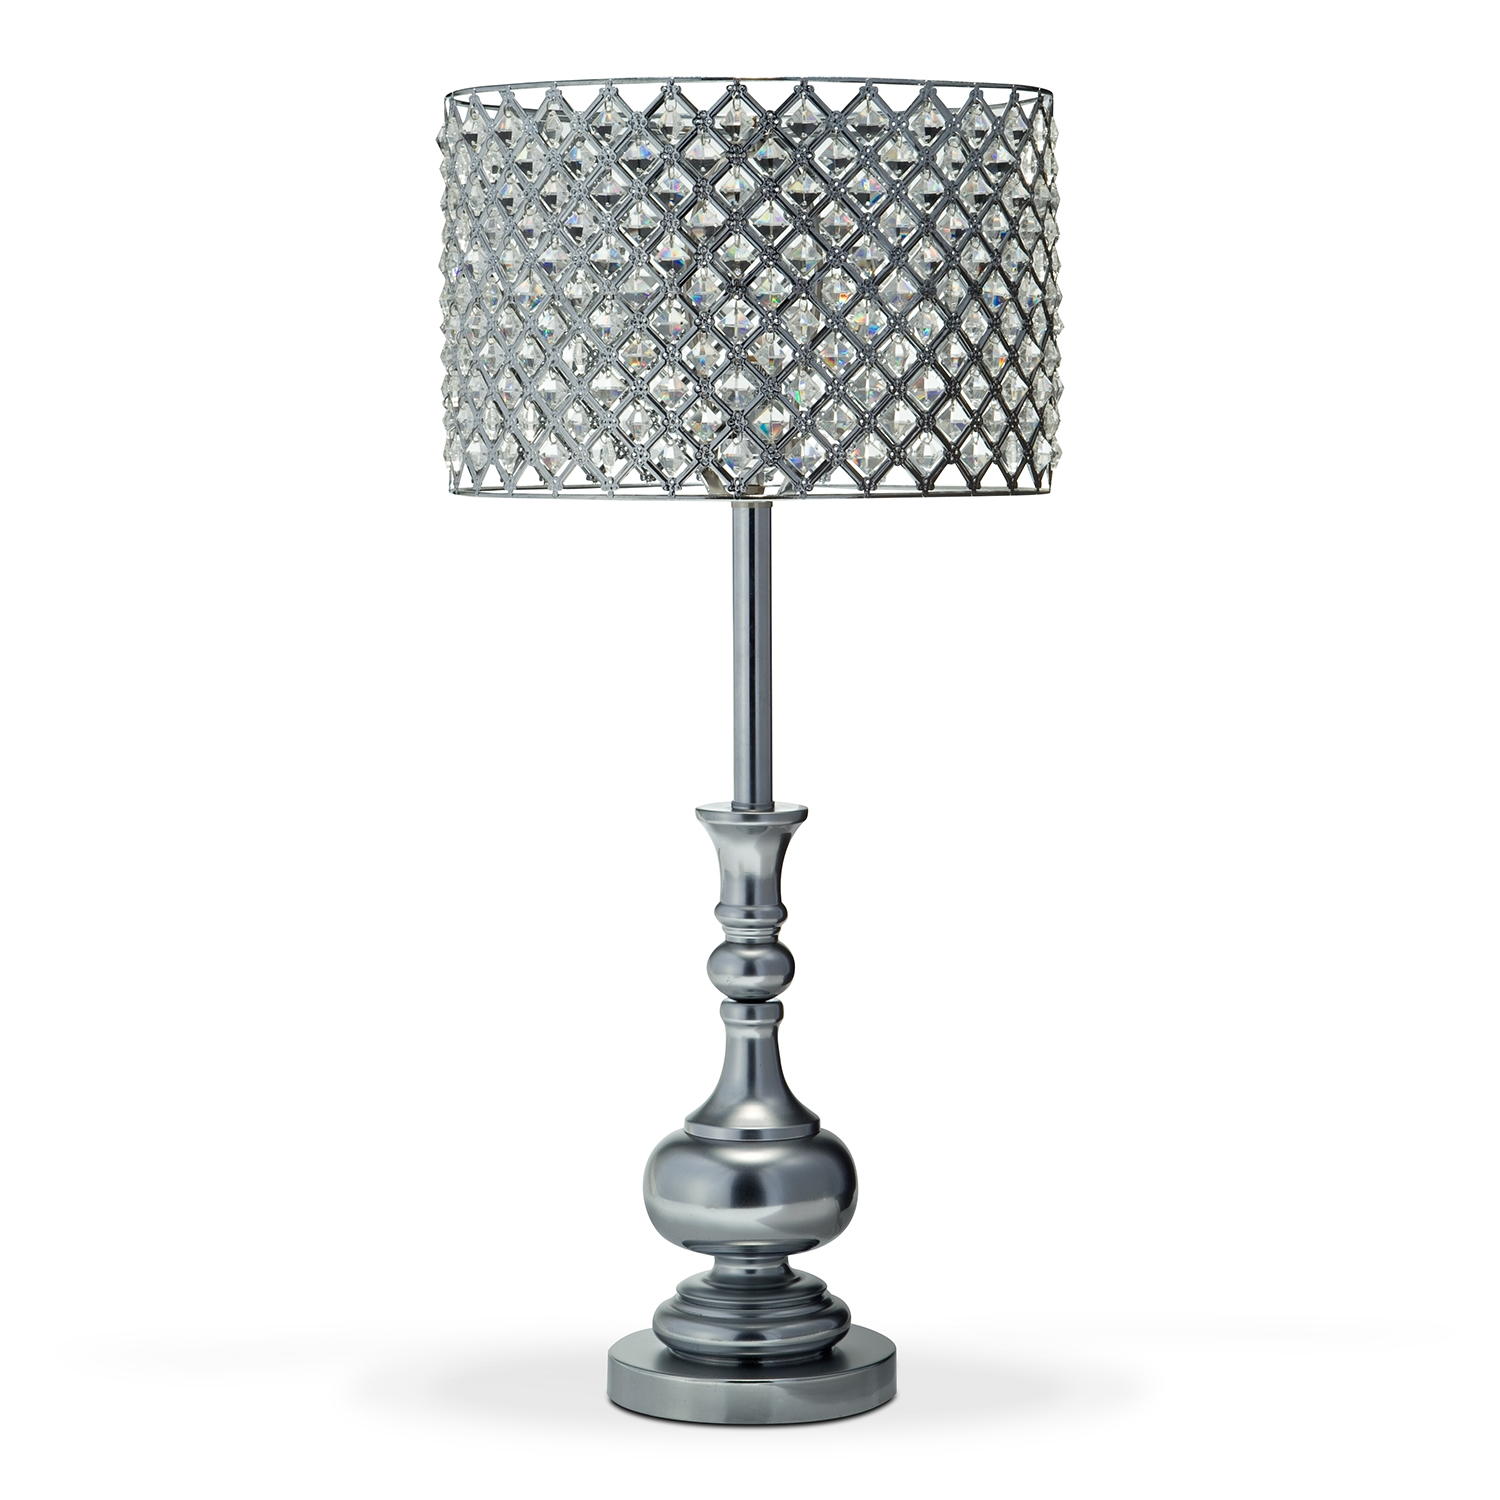 House Table Lamp Table Lamp Crystal Bring Elegance And Beauty In Your